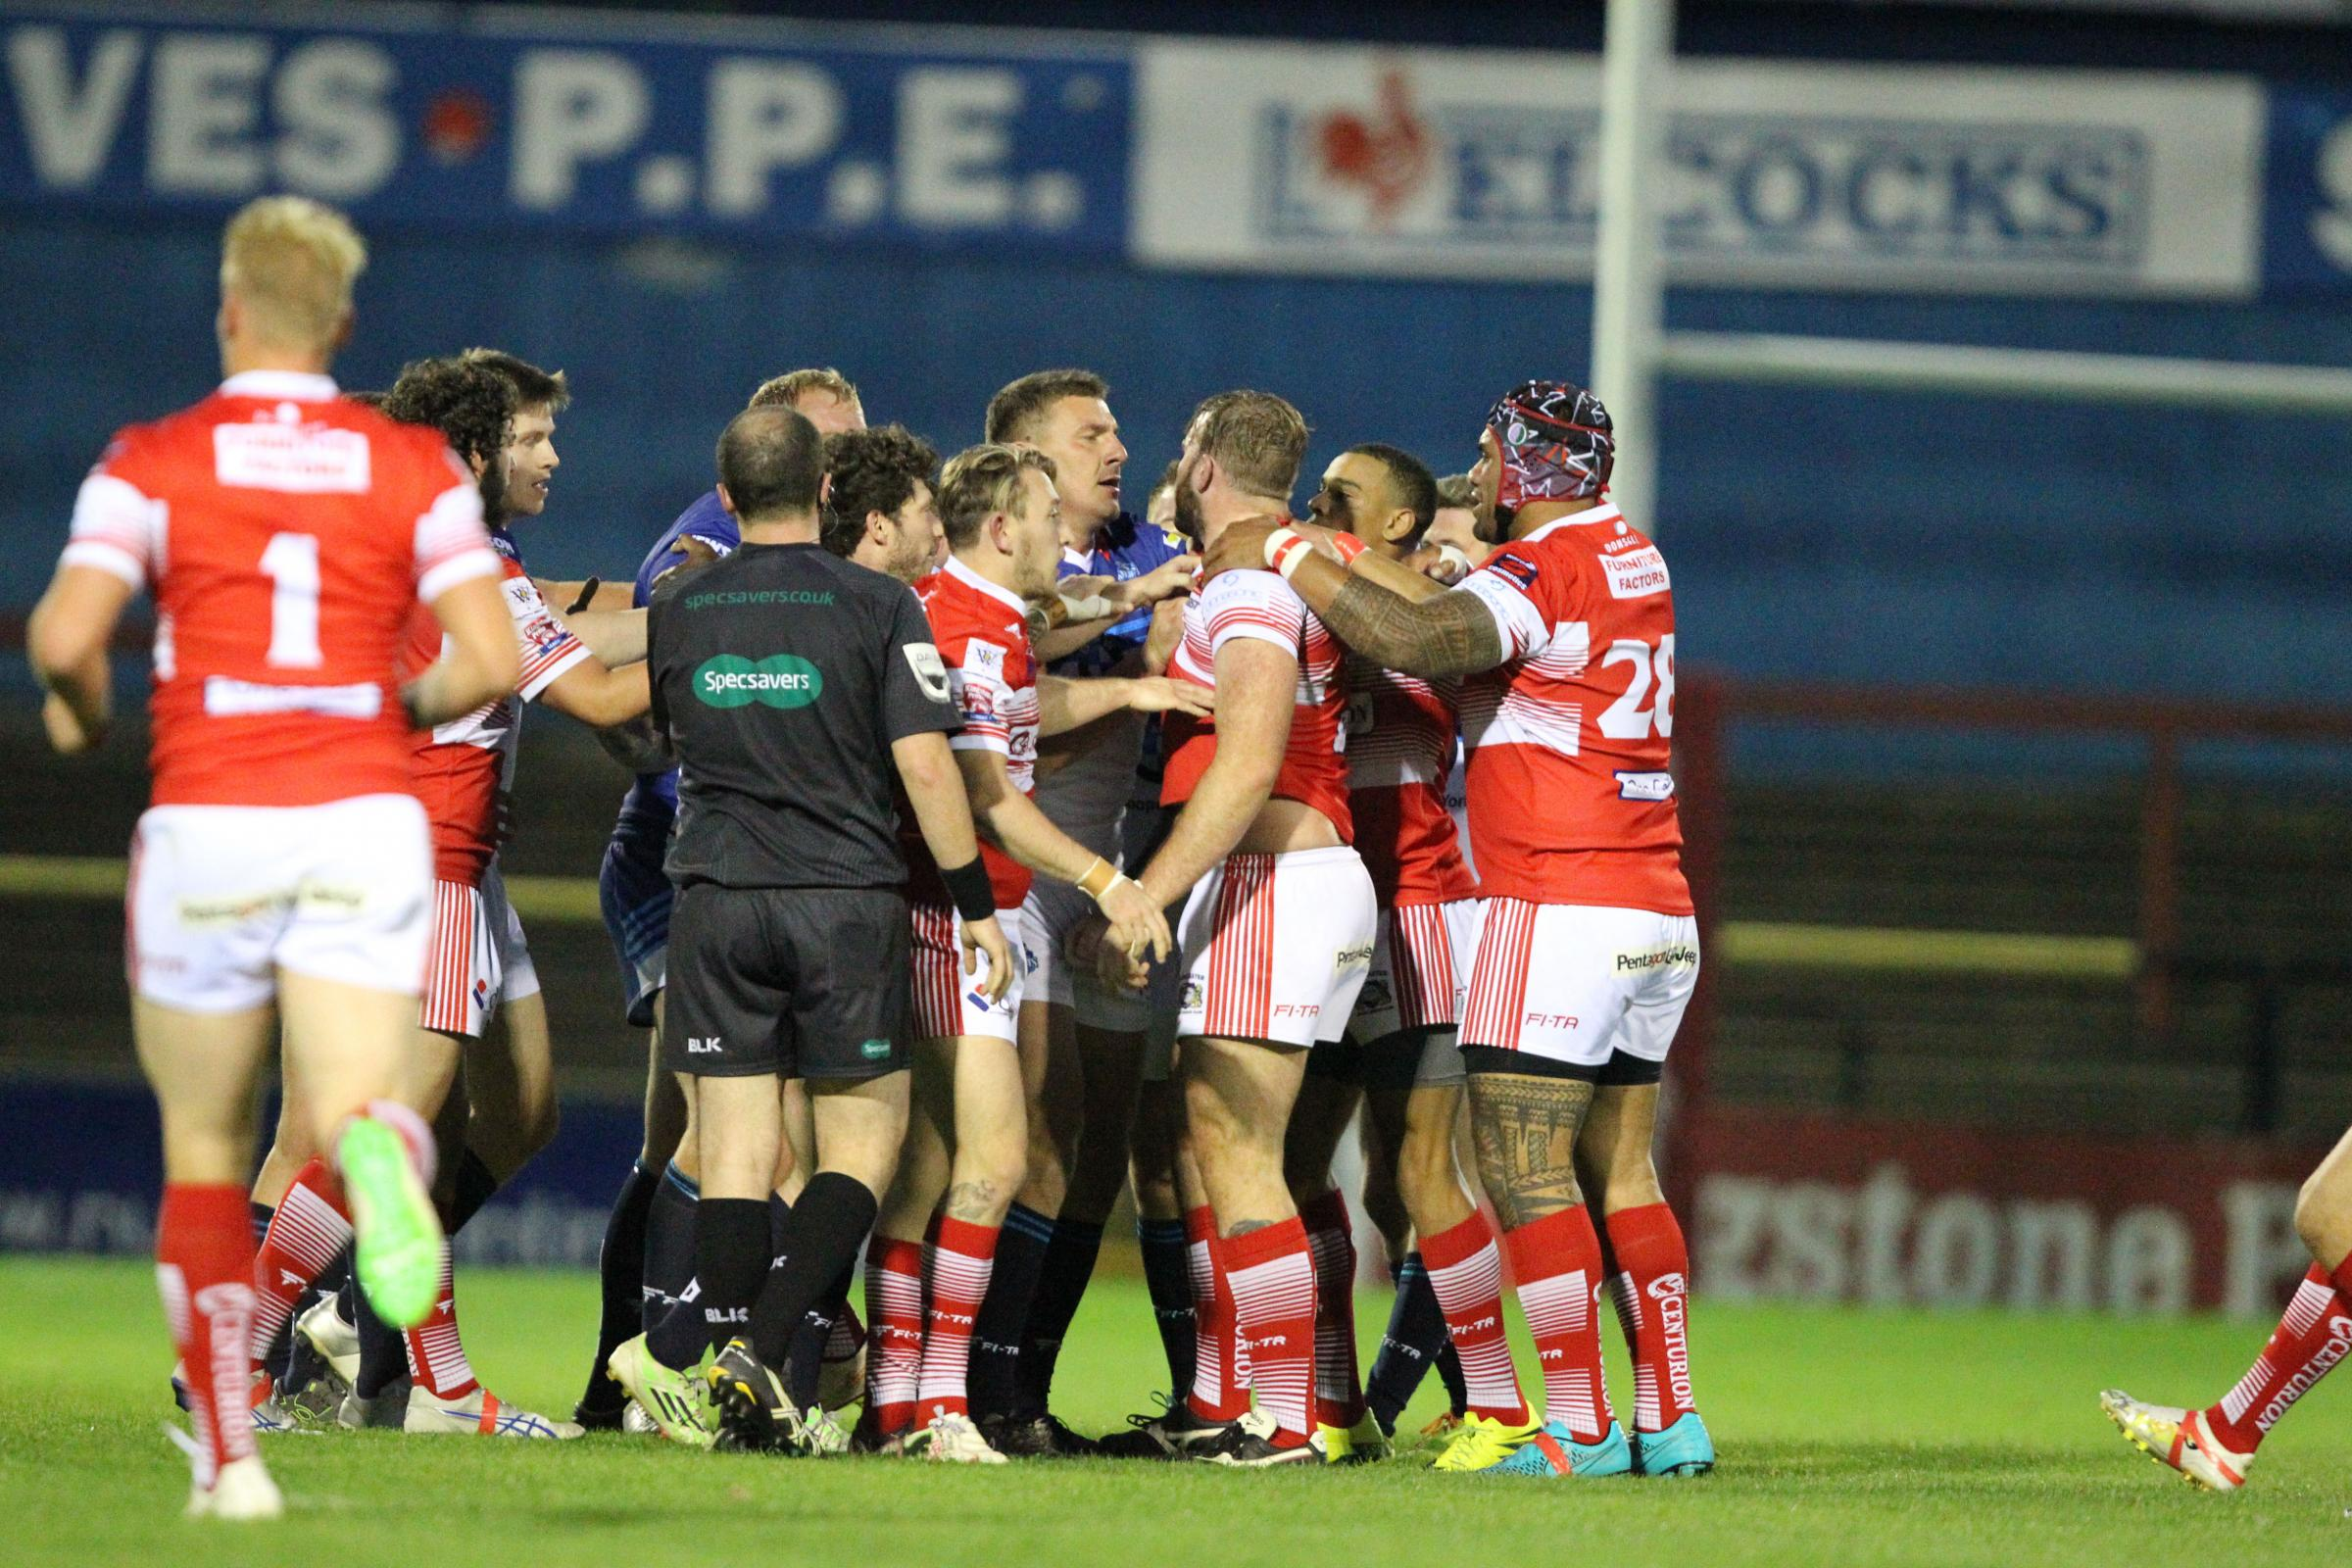 A little bit of argy-bargy suggests York City Knights weren't taking it easy against Doncaster on Thursday night, no matter whether the defeat leads to a preferable run in the play-offs or not. Picture: Gordon Clayton